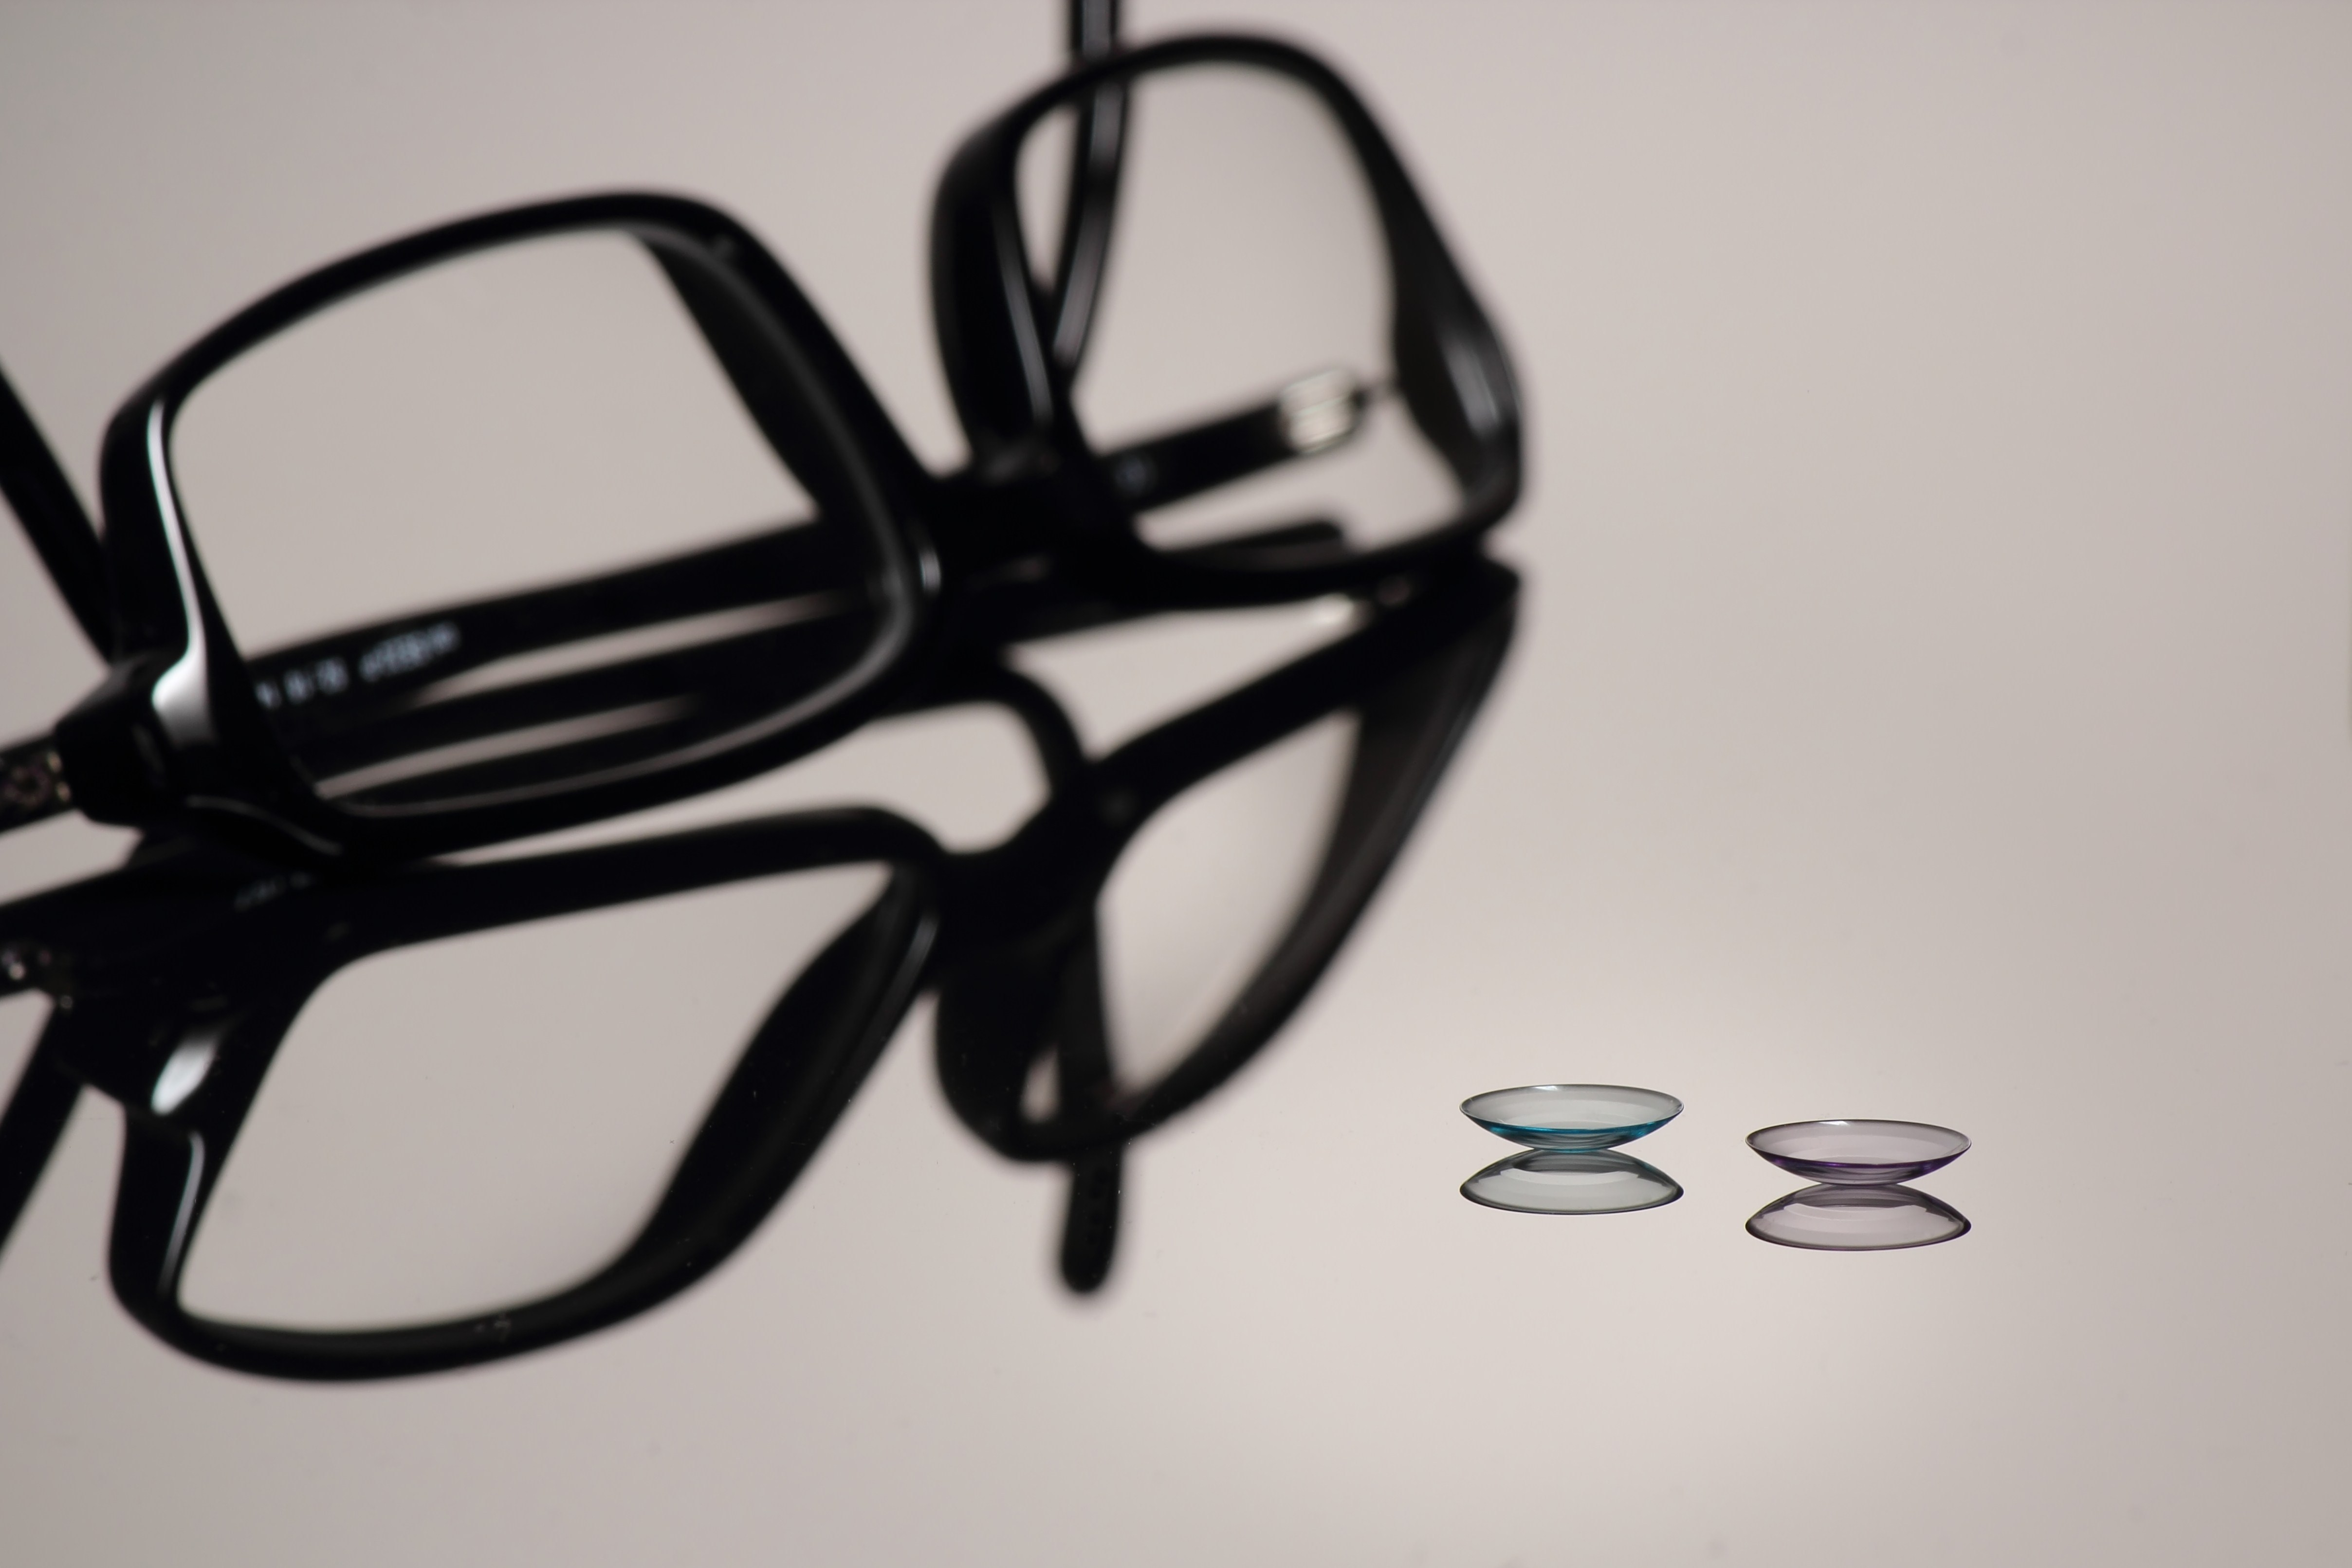 Glasses Or Contacts? | VSP Vision Plans